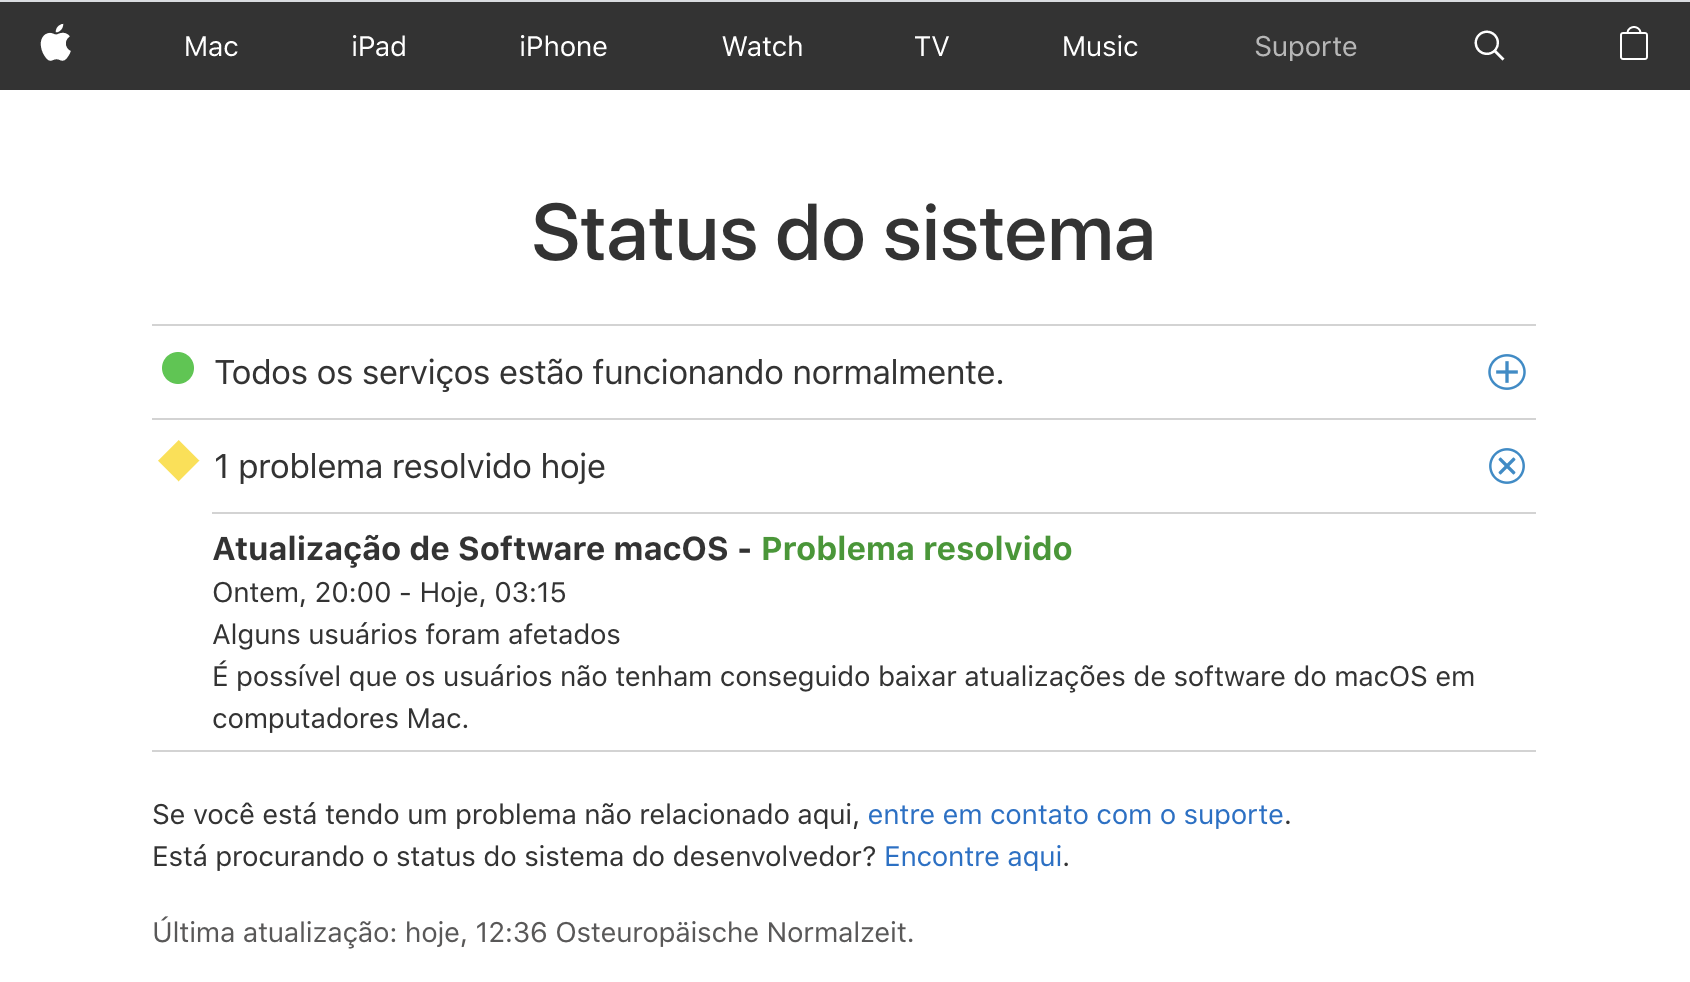 Página de status do sistema da Apple